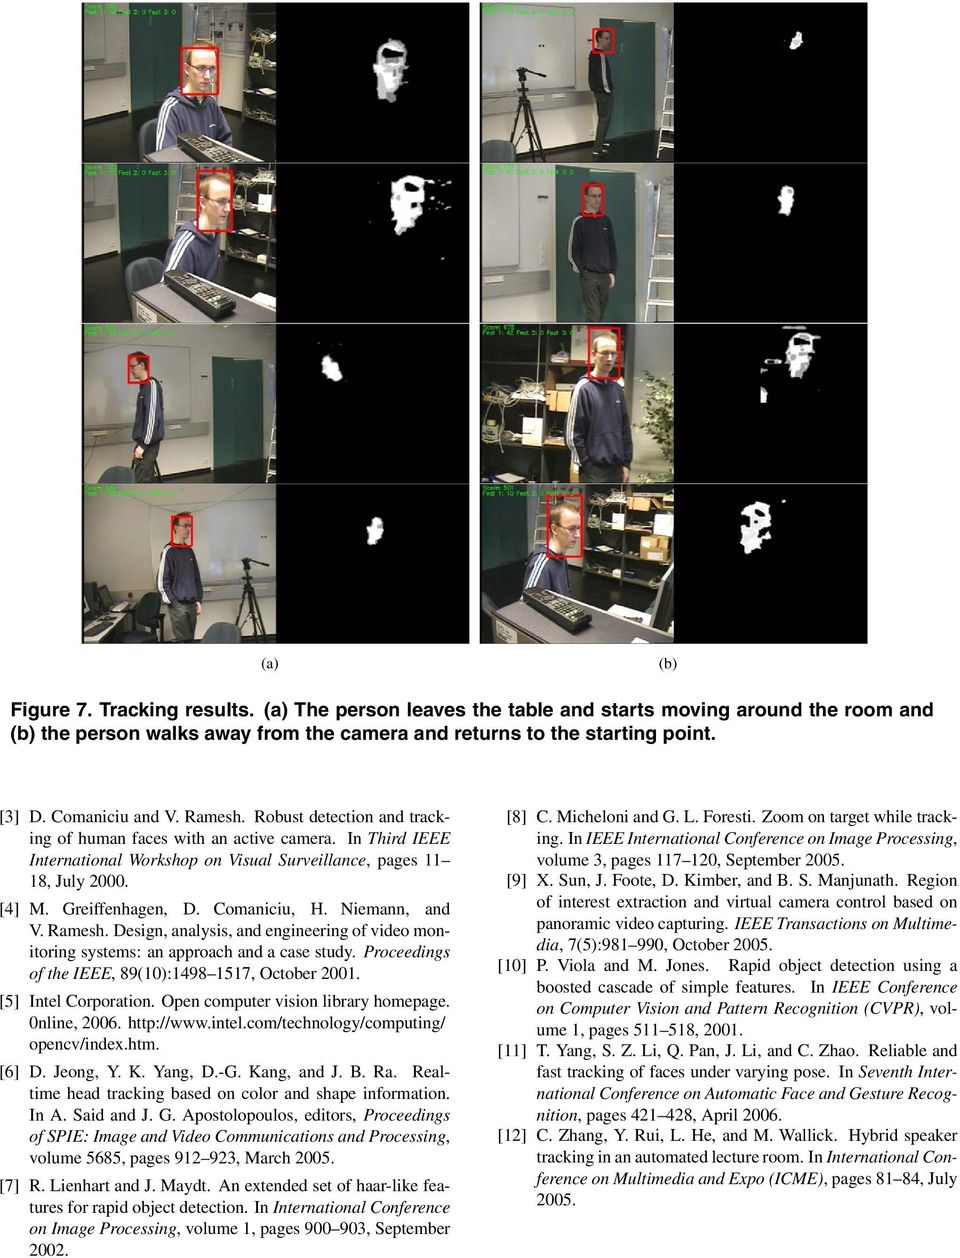 Greiffenhagen, D. Comaniciu, H. Niemann, and V. Ramesh. Design, analysis, and engineering of video monitoring systems: an approach and a case study.